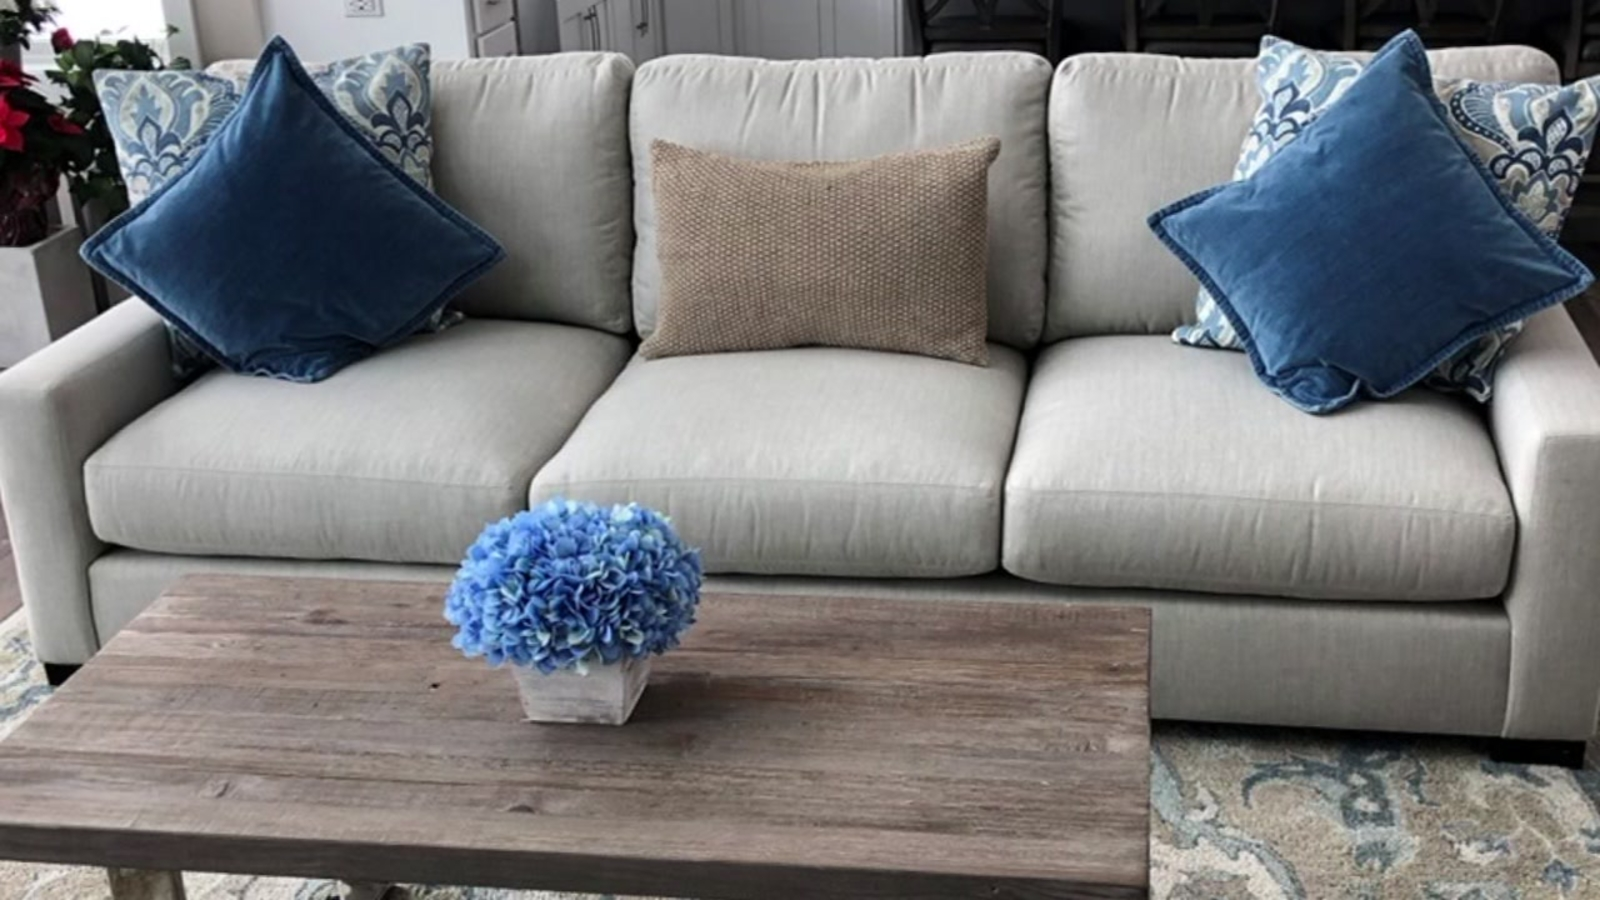 Pottery Barn Delivers Furniture Before House Is Built